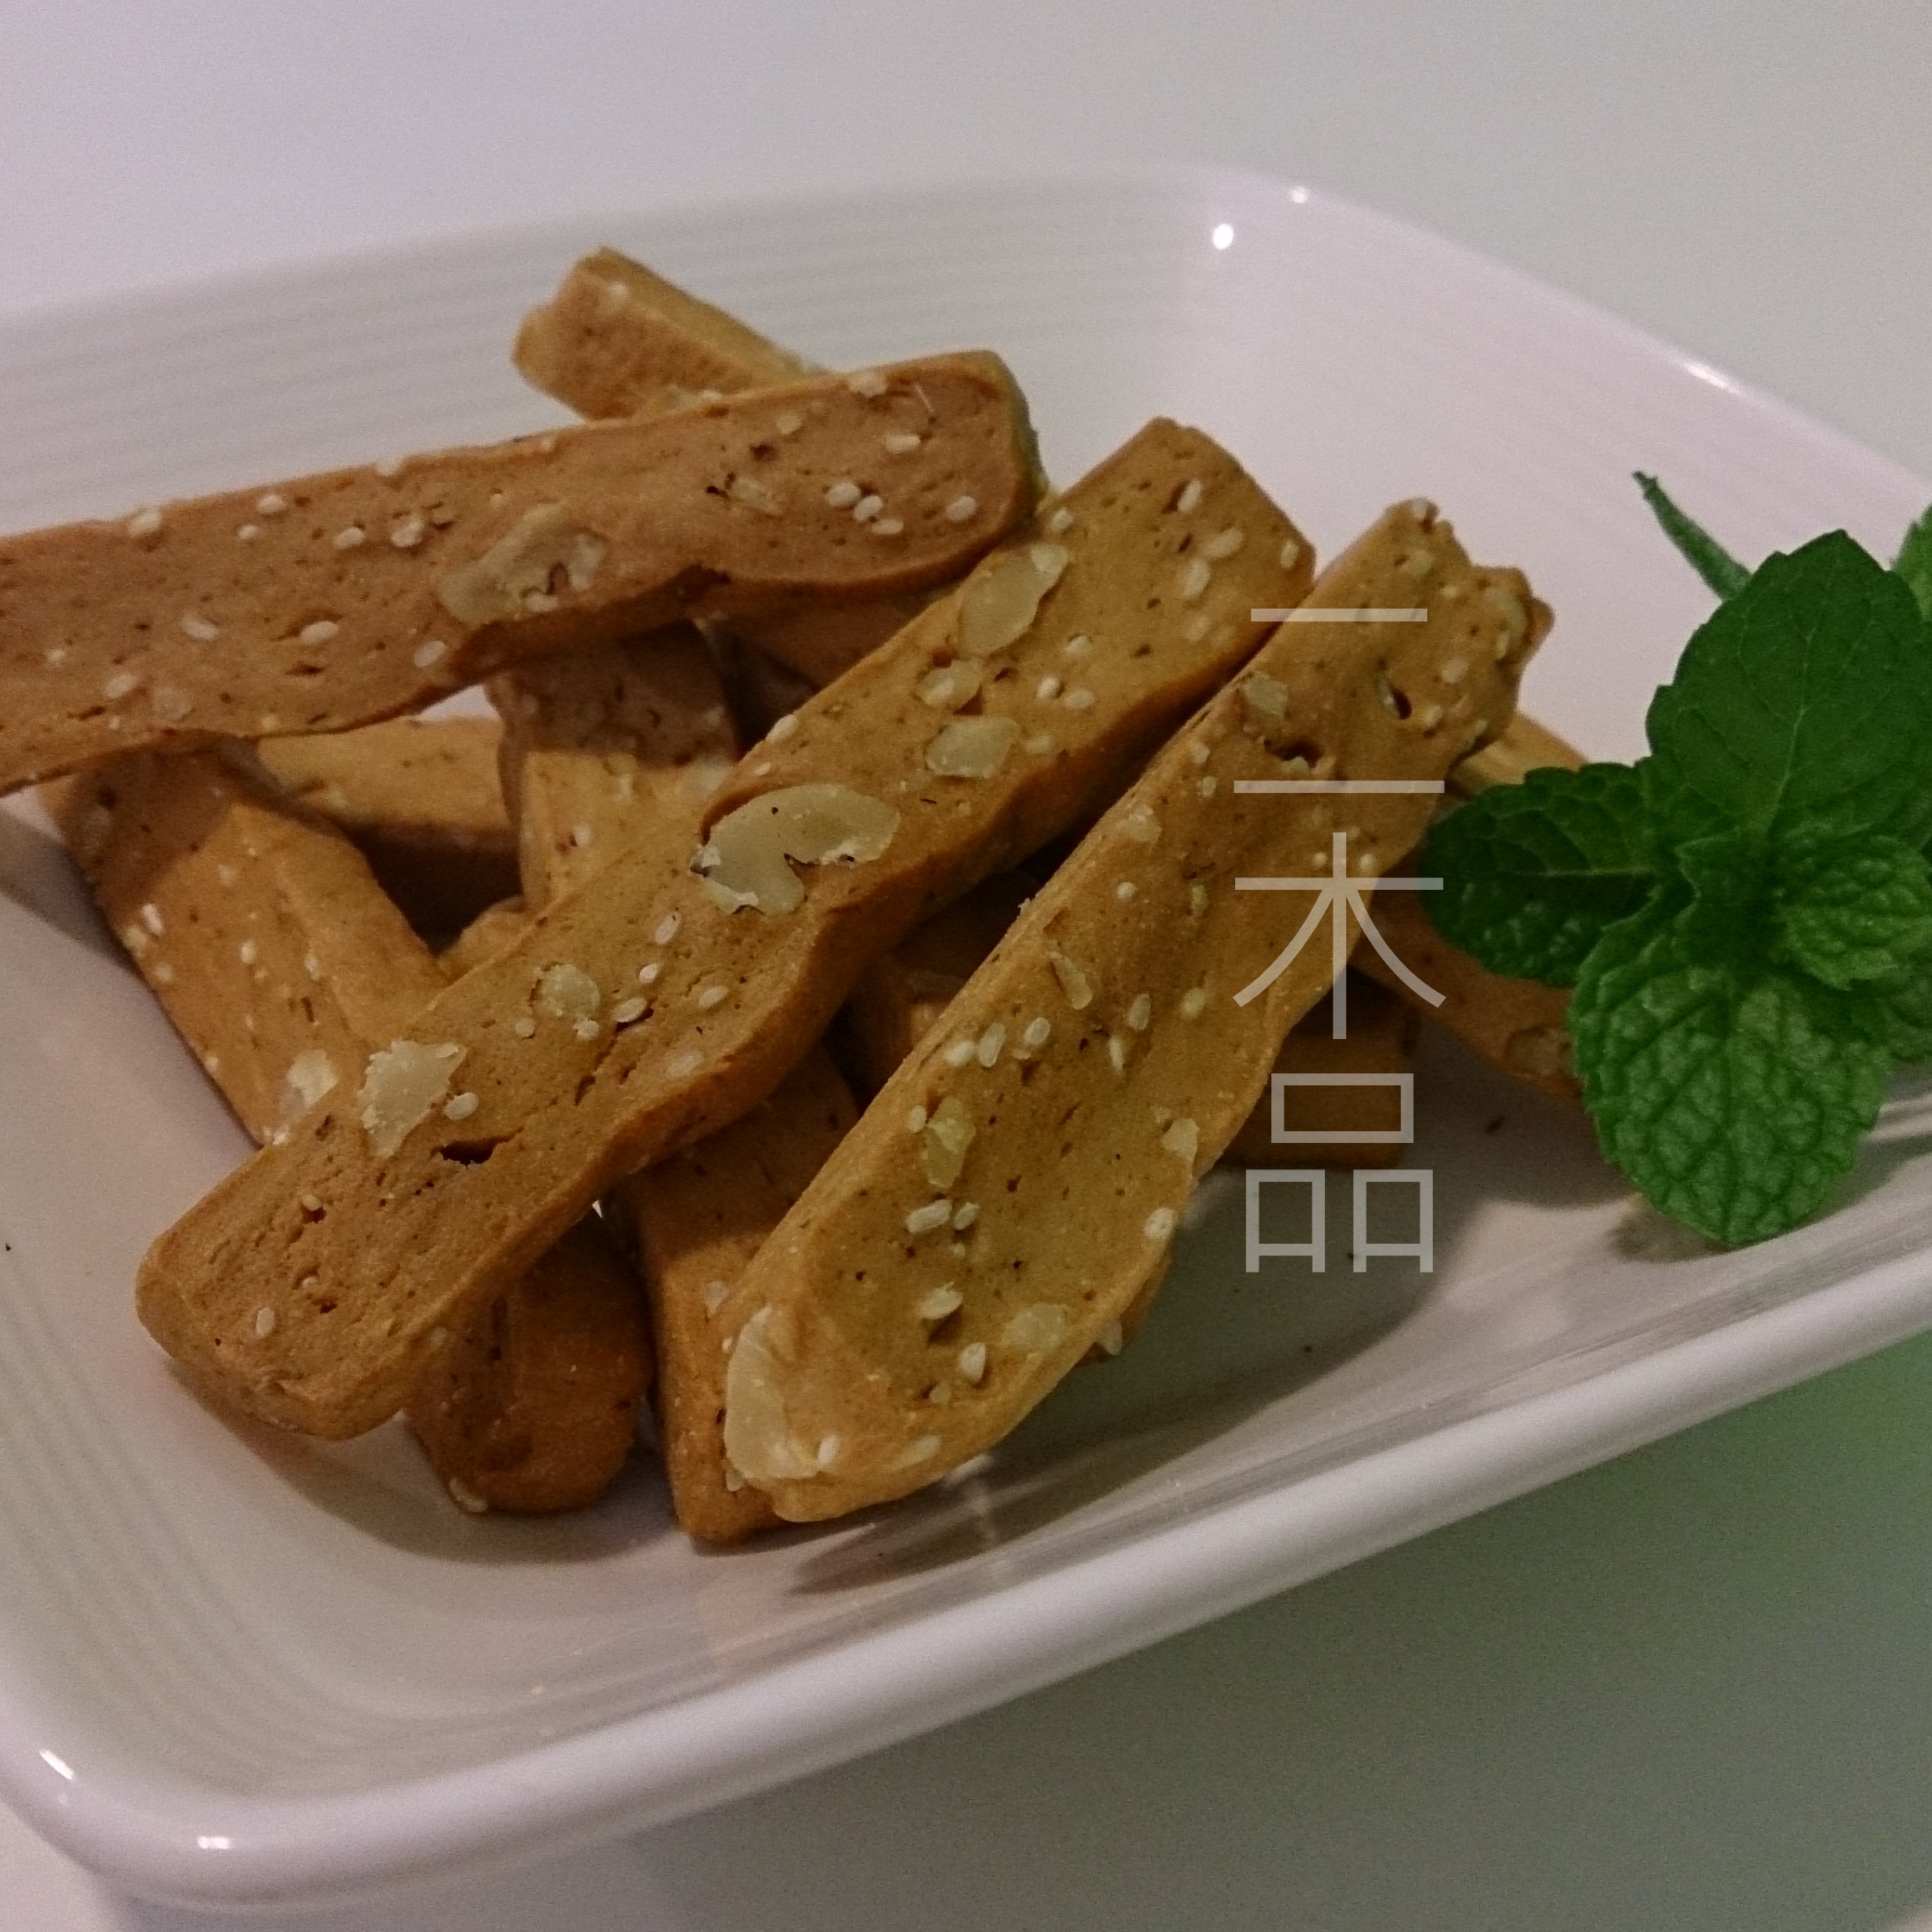 【二木品 marugo~阿拉棒 Grissini 】白芝麻核桃阿拉棒 White sesame with walnuts of Grissini(奶素)